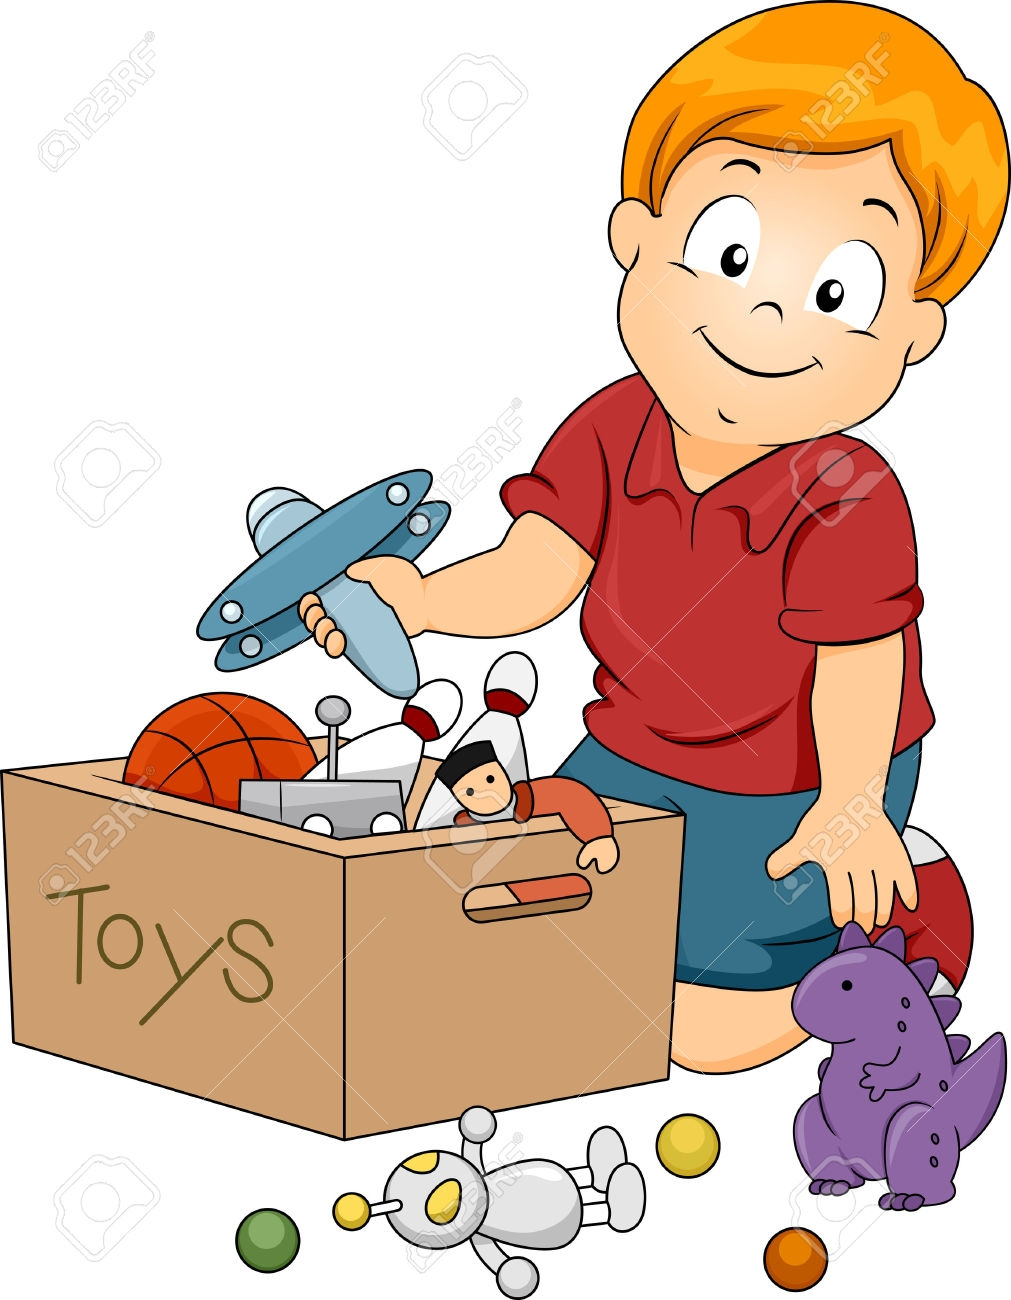 Children tidying up clipart.